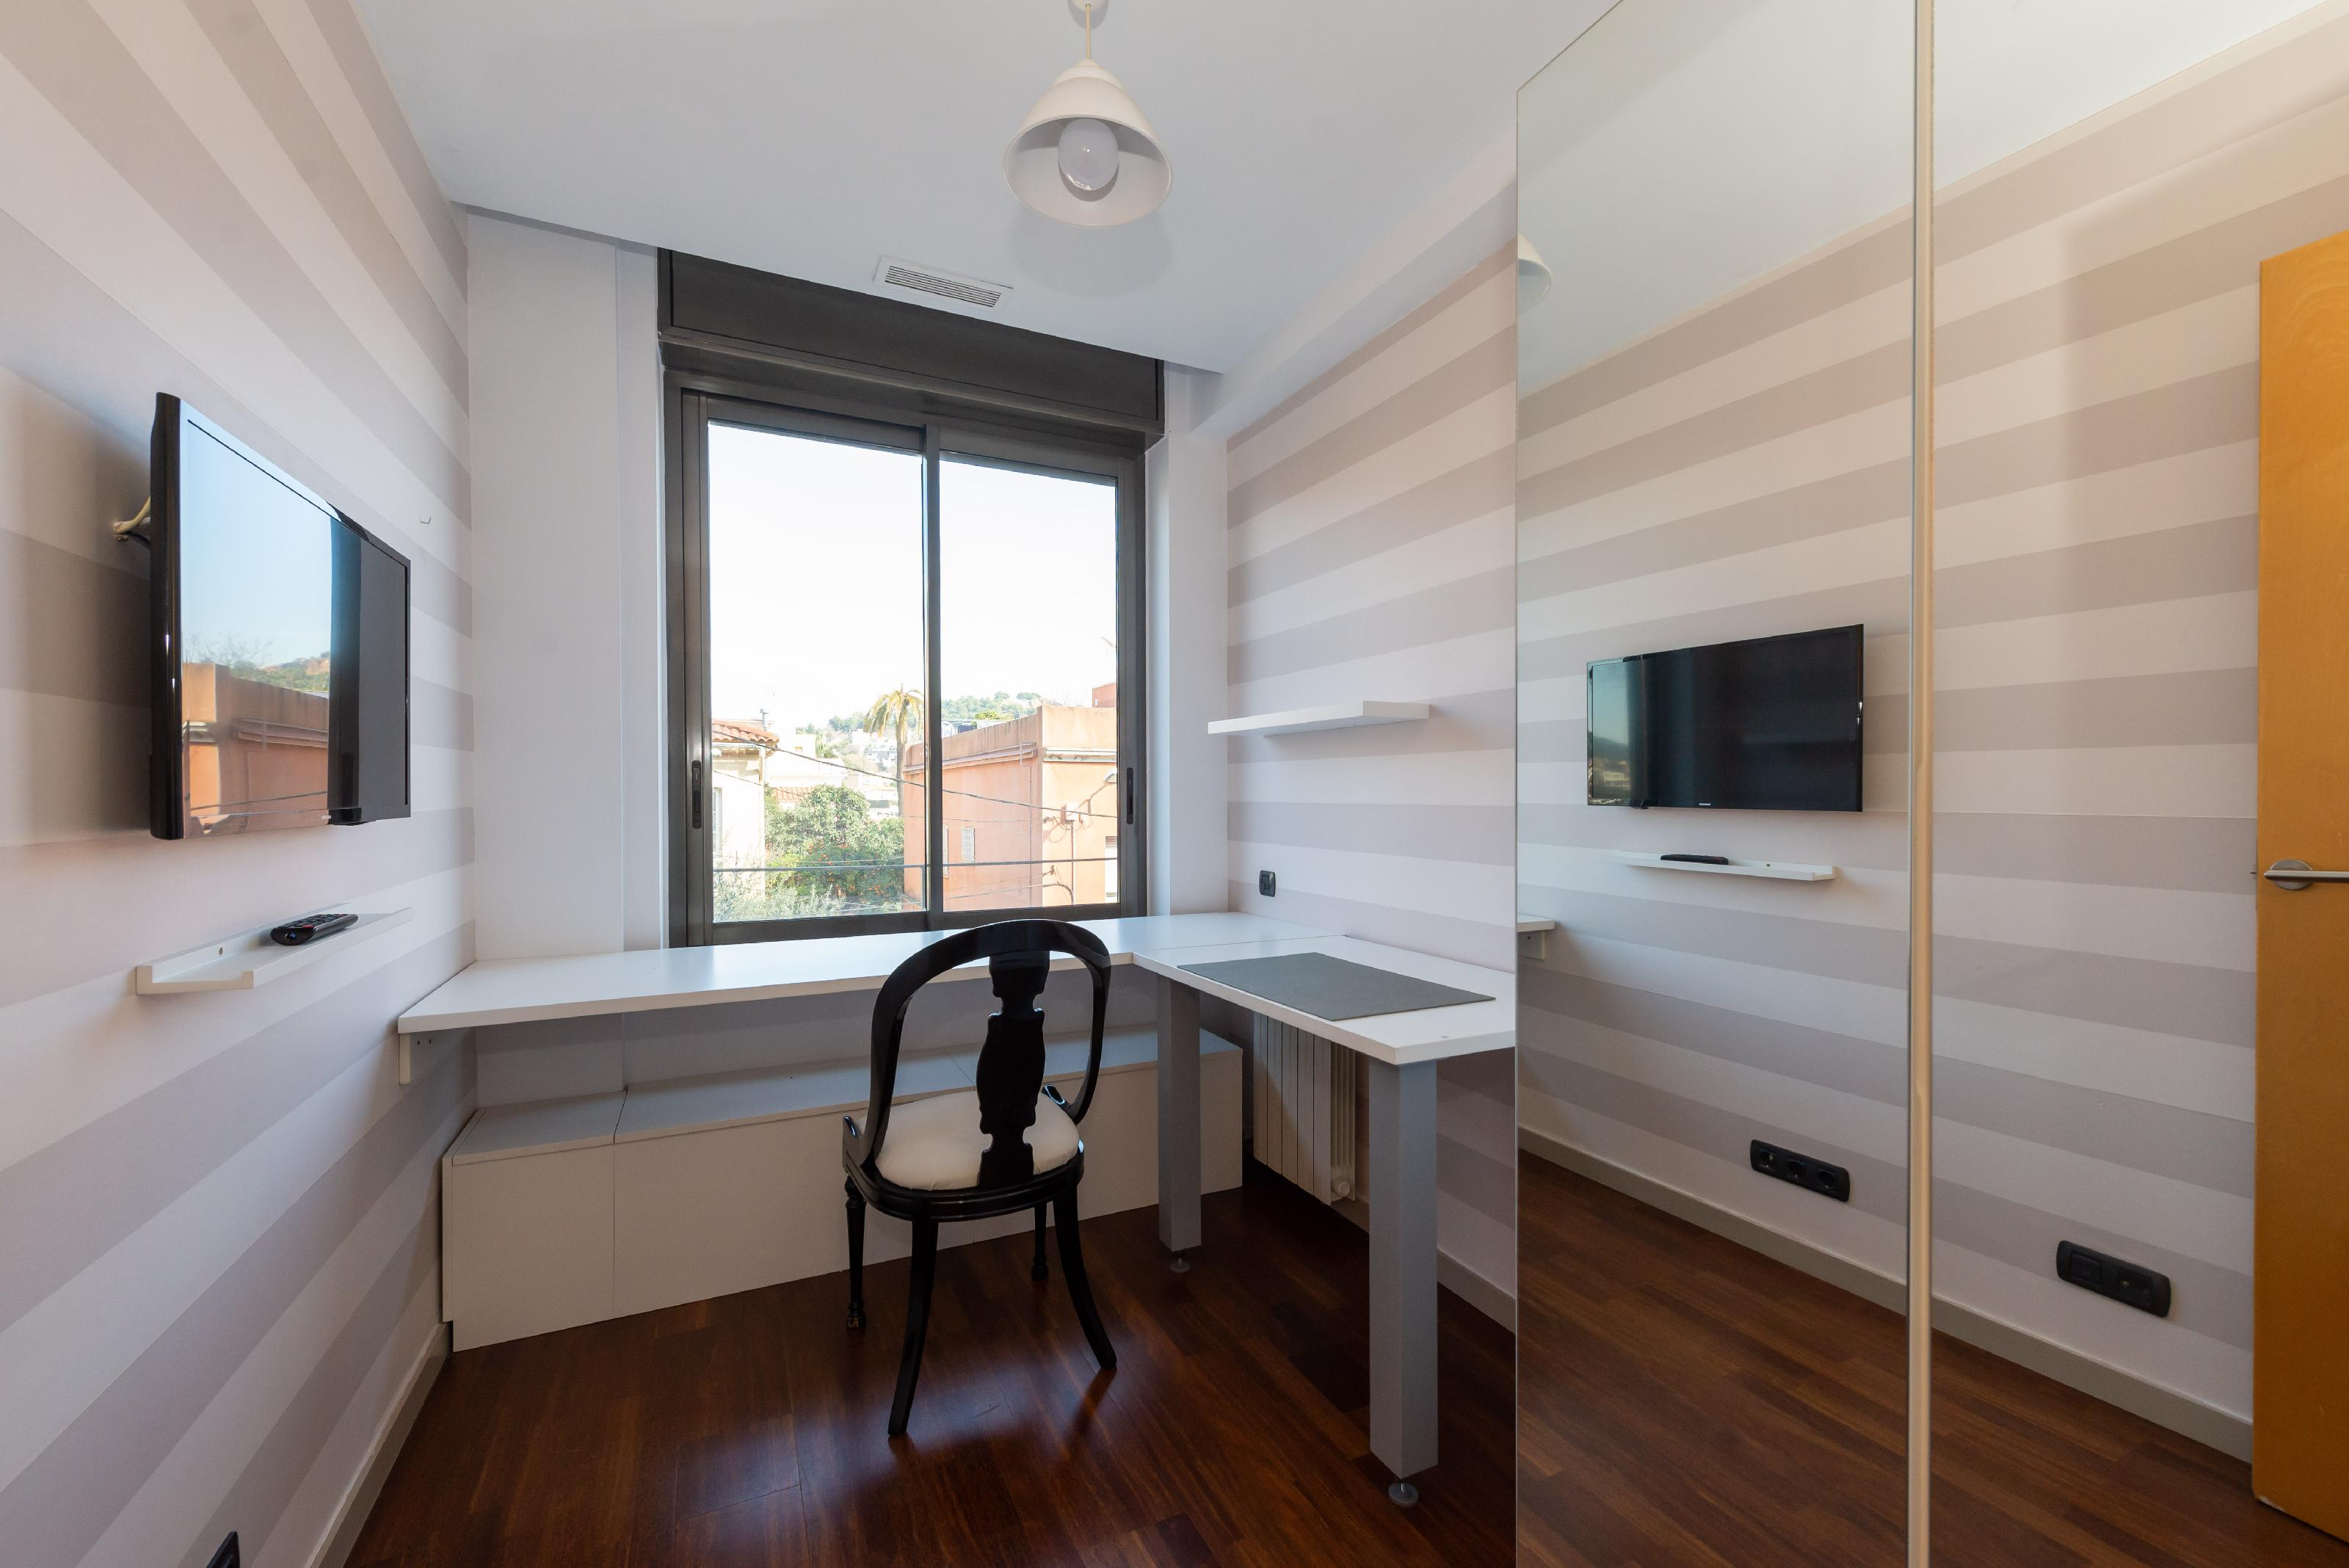 246682 Flat for sale in Gràcia, Vallcarca and Els Penitents 16